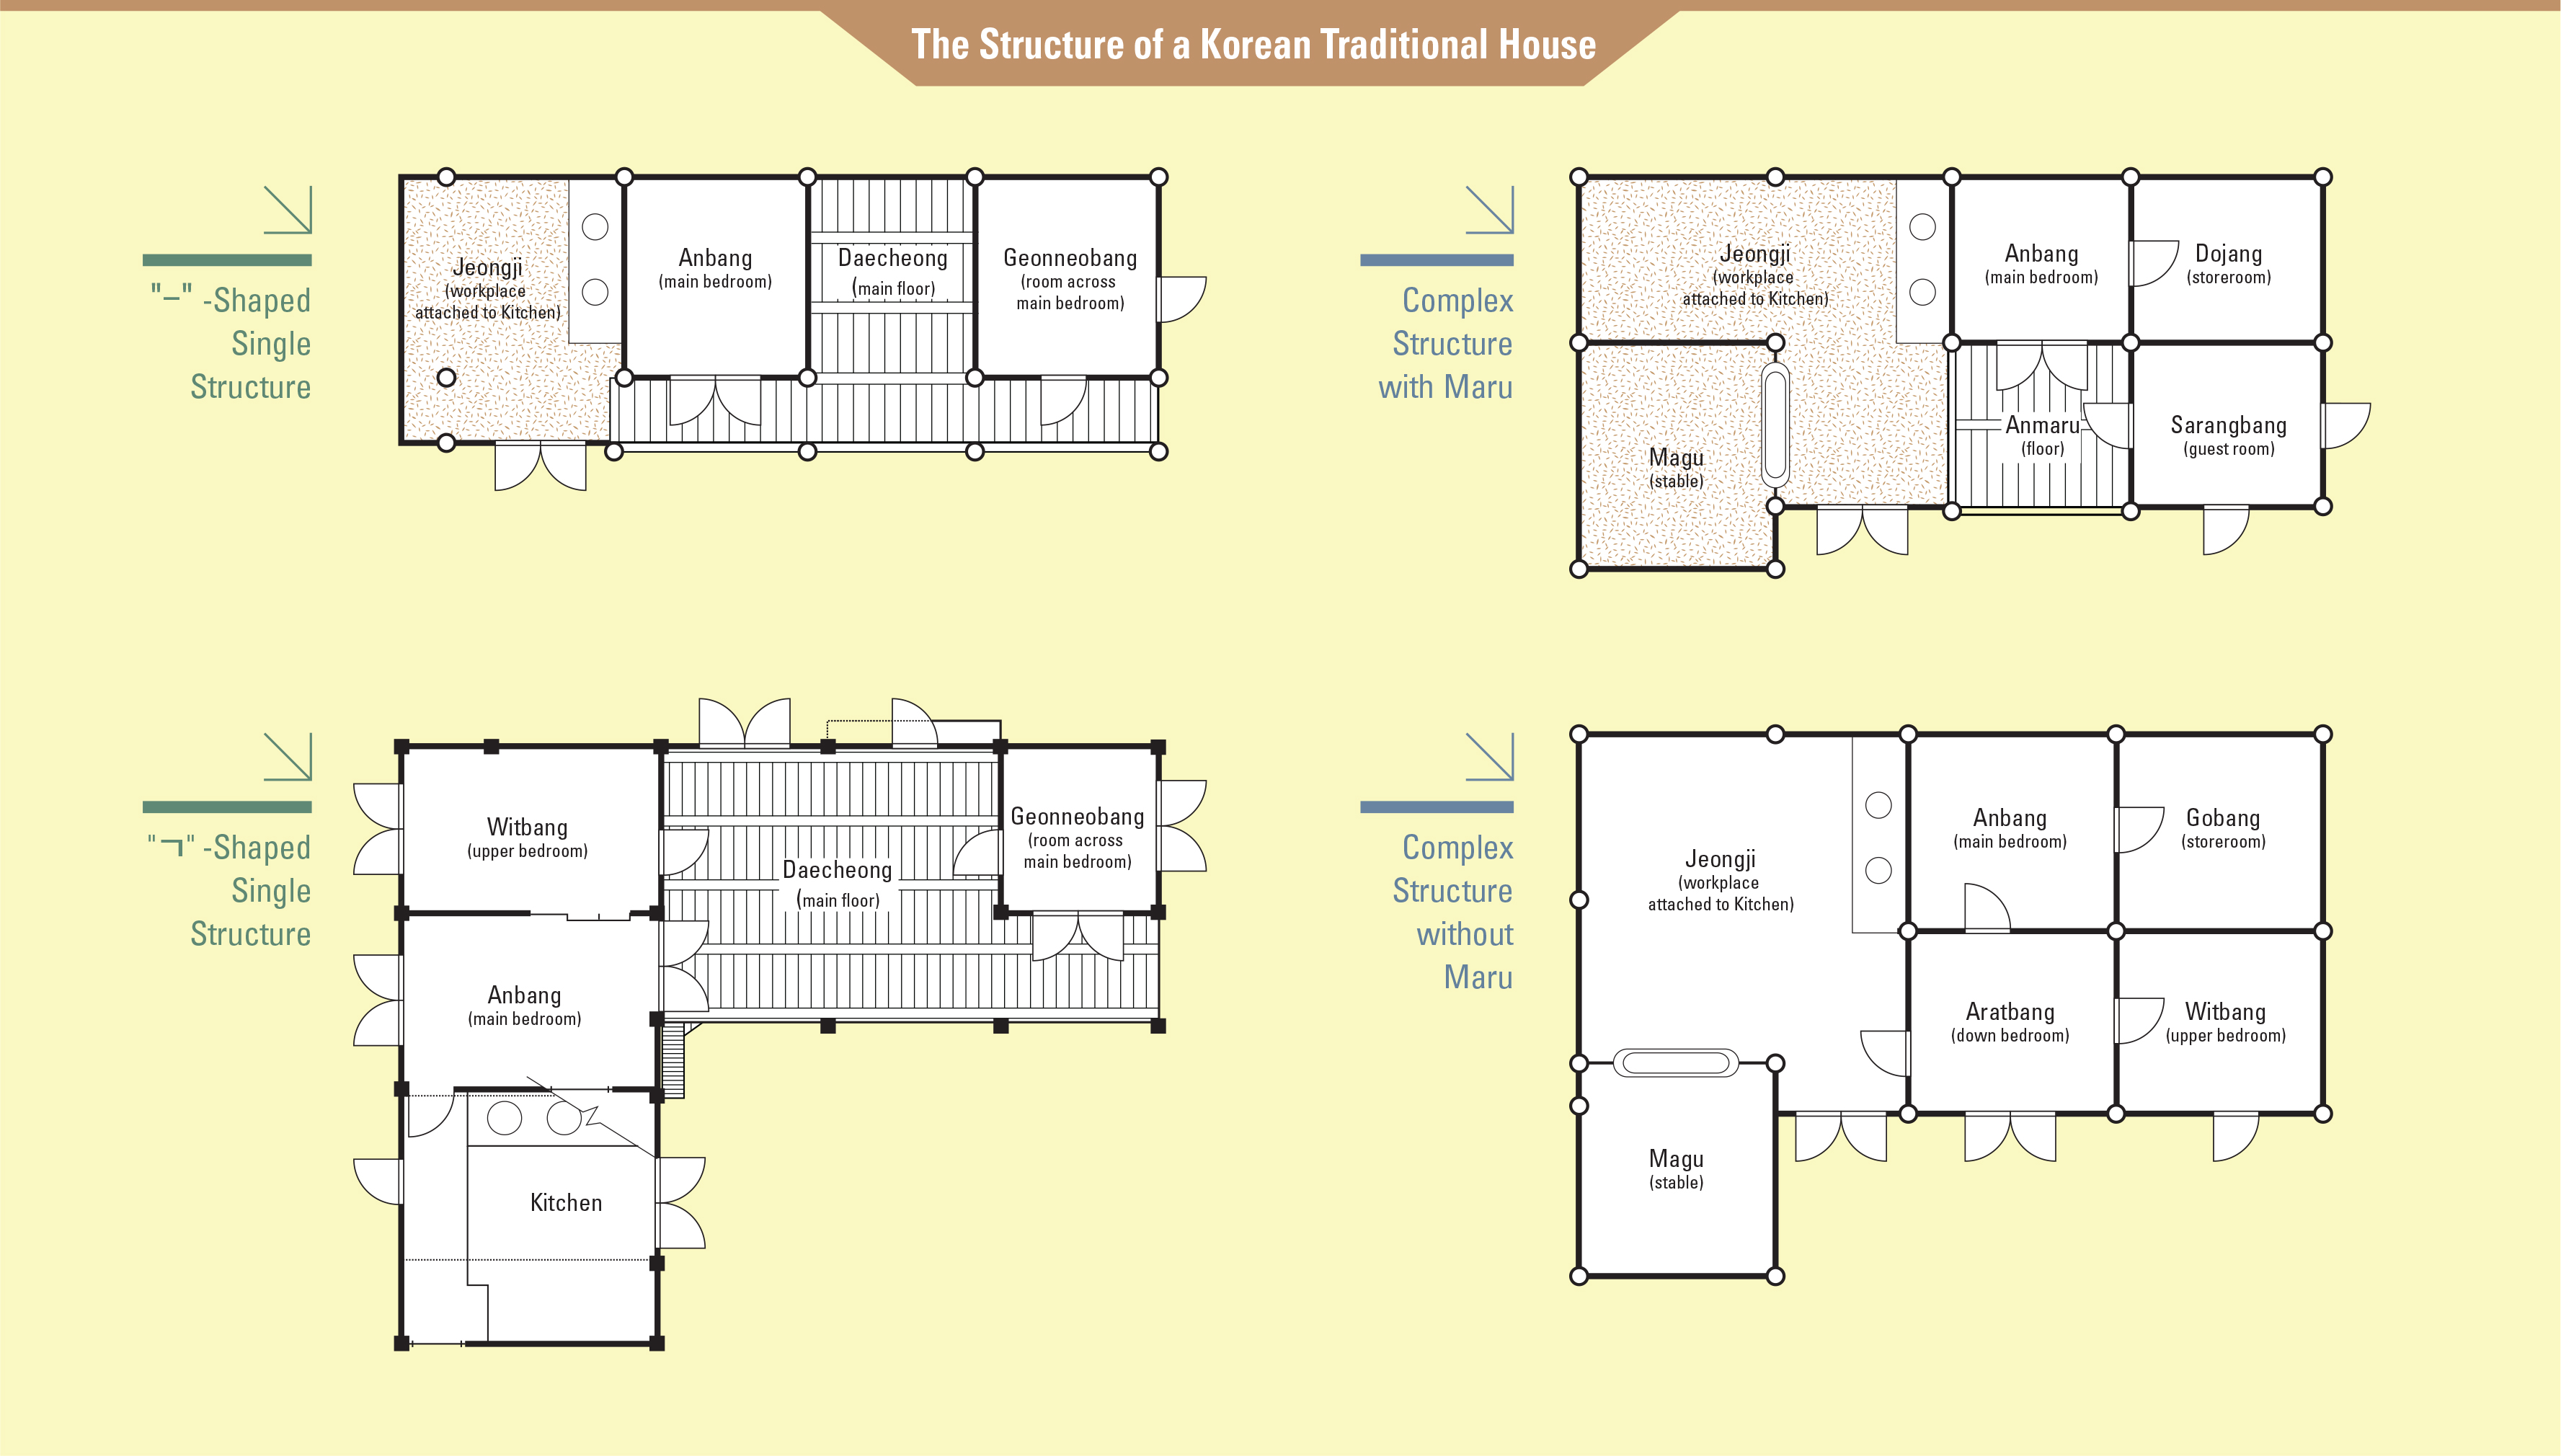 The Structure of a Korean Traditional House